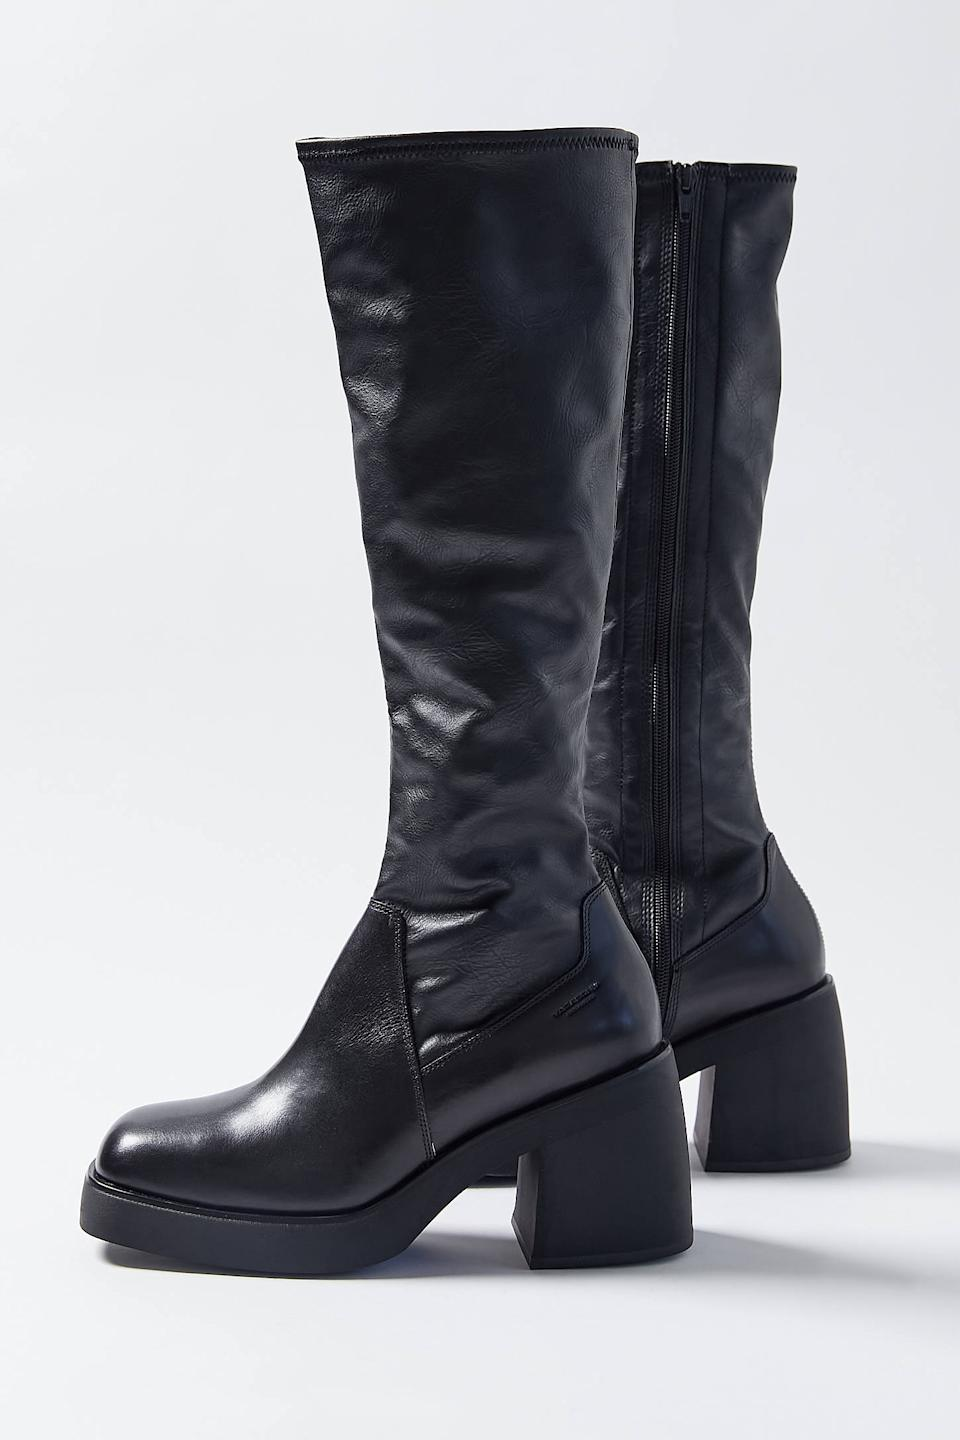 """<br><br><strong>Vagabond Shoemakers</strong> Brooke Knee-High Boot, $, available at <a href=""""https://go.skimresources.com/?id=30283X879131&url=https%3A%2F%2Fwww.urbanoutfitters.com%2Fshop%2Fvagabond-shoemakers-brooke-knee-high-boot%3Fcategory%3Dboots-for-women%26color%3D001%26quantity%3D1"""" rel=""""nofollow noopener"""" target=""""_blank"""" data-ylk=""""slk:Urban Outfitters"""" class=""""link rapid-noclick-resp"""">Urban Outfitters</a>"""